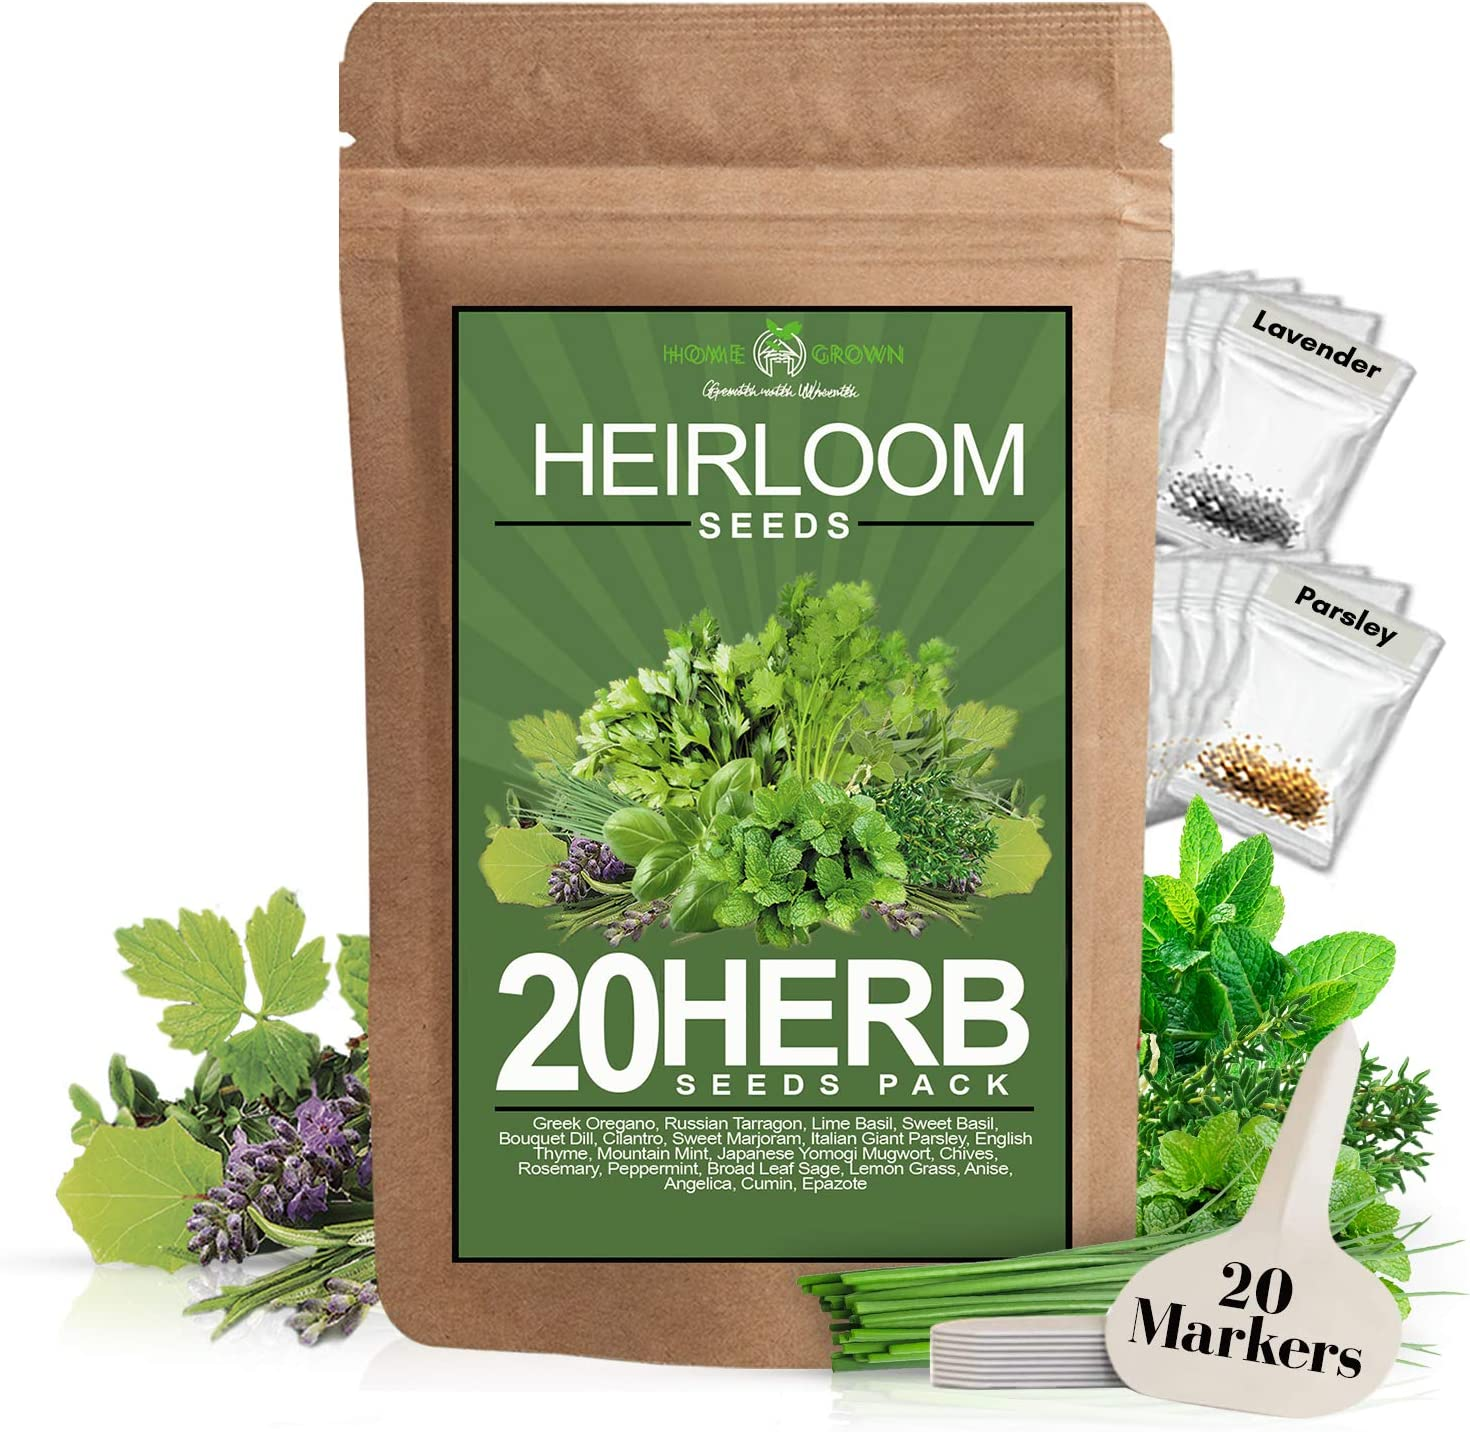 20 Culinary Herb Seed Vault - Heirloom and Non GMO - Seeds for Planting for Indoor or Outdoor Herbs Garden, Basil, Cilantro, Parsley, Chives, Lavender, Dill, Marjoram, Mint, Rosemary, Thyme